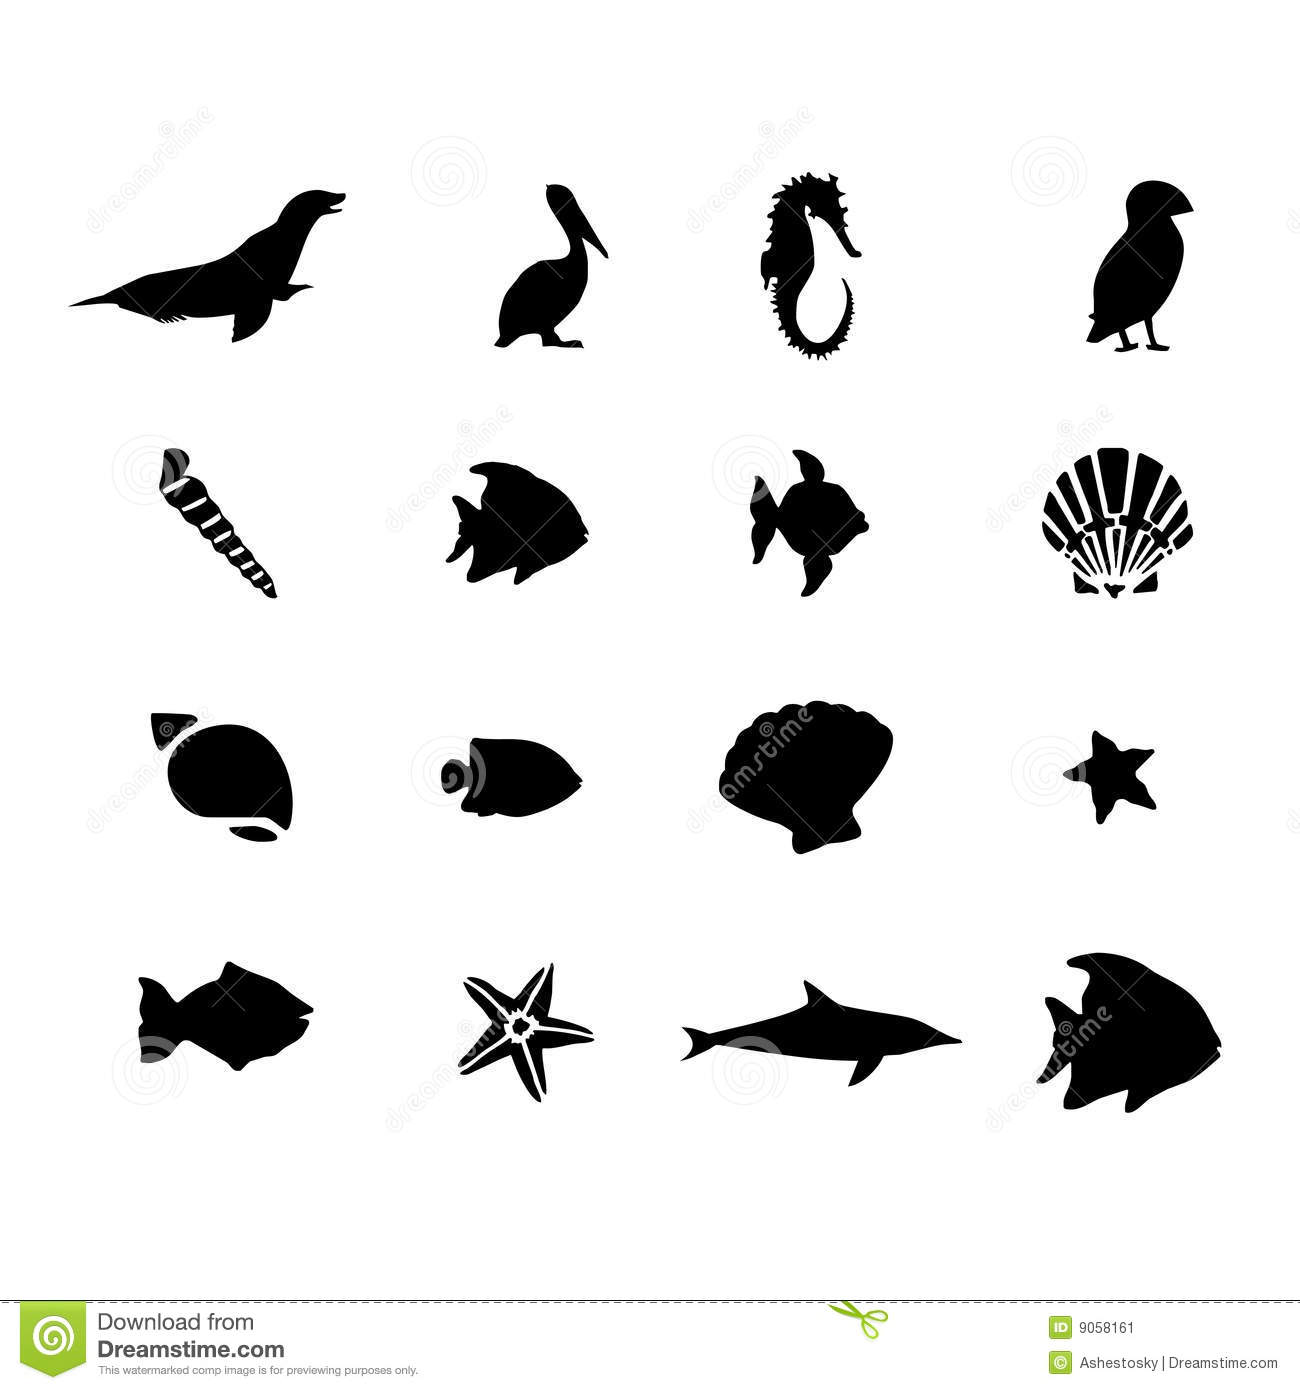 Cable equipment design in addition Royalty Free Stock Image Shark Tattoo Design Illustration Image30892216 additionally Picture Of Ocean Animals also Props 101 together with 33026 Ship And Anchor A Means To Keep The Ship Stationary. on marine water